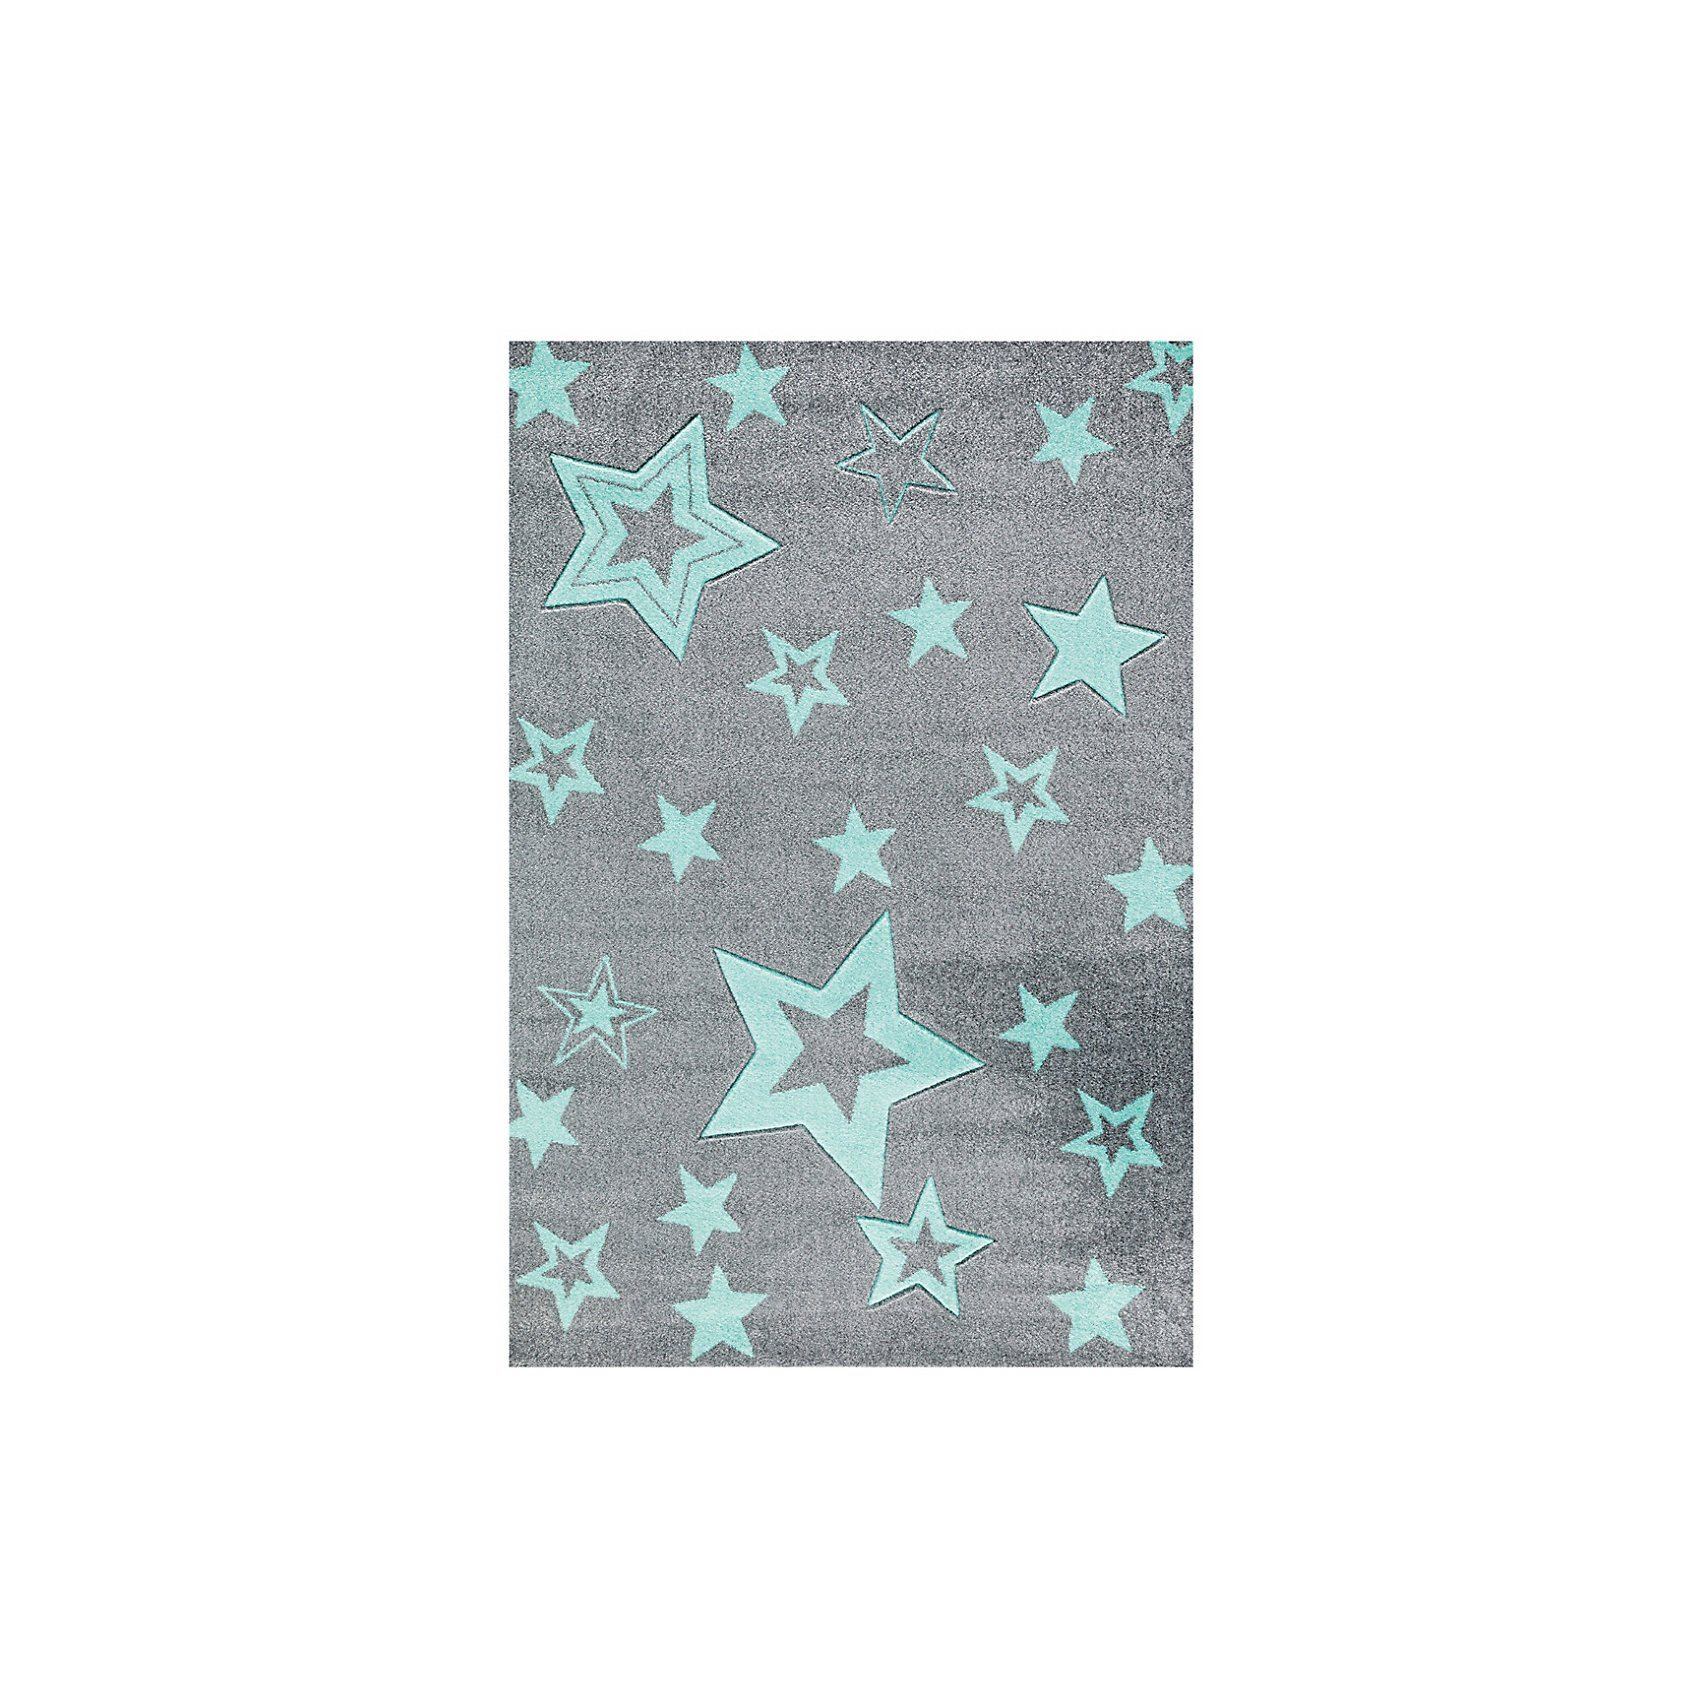 Happy Rugs Kinderteppich, STARLIGHT grau/mint | Kinderzimmer > Textilien für Kinder > Kinderteppiche | Happy Rugs